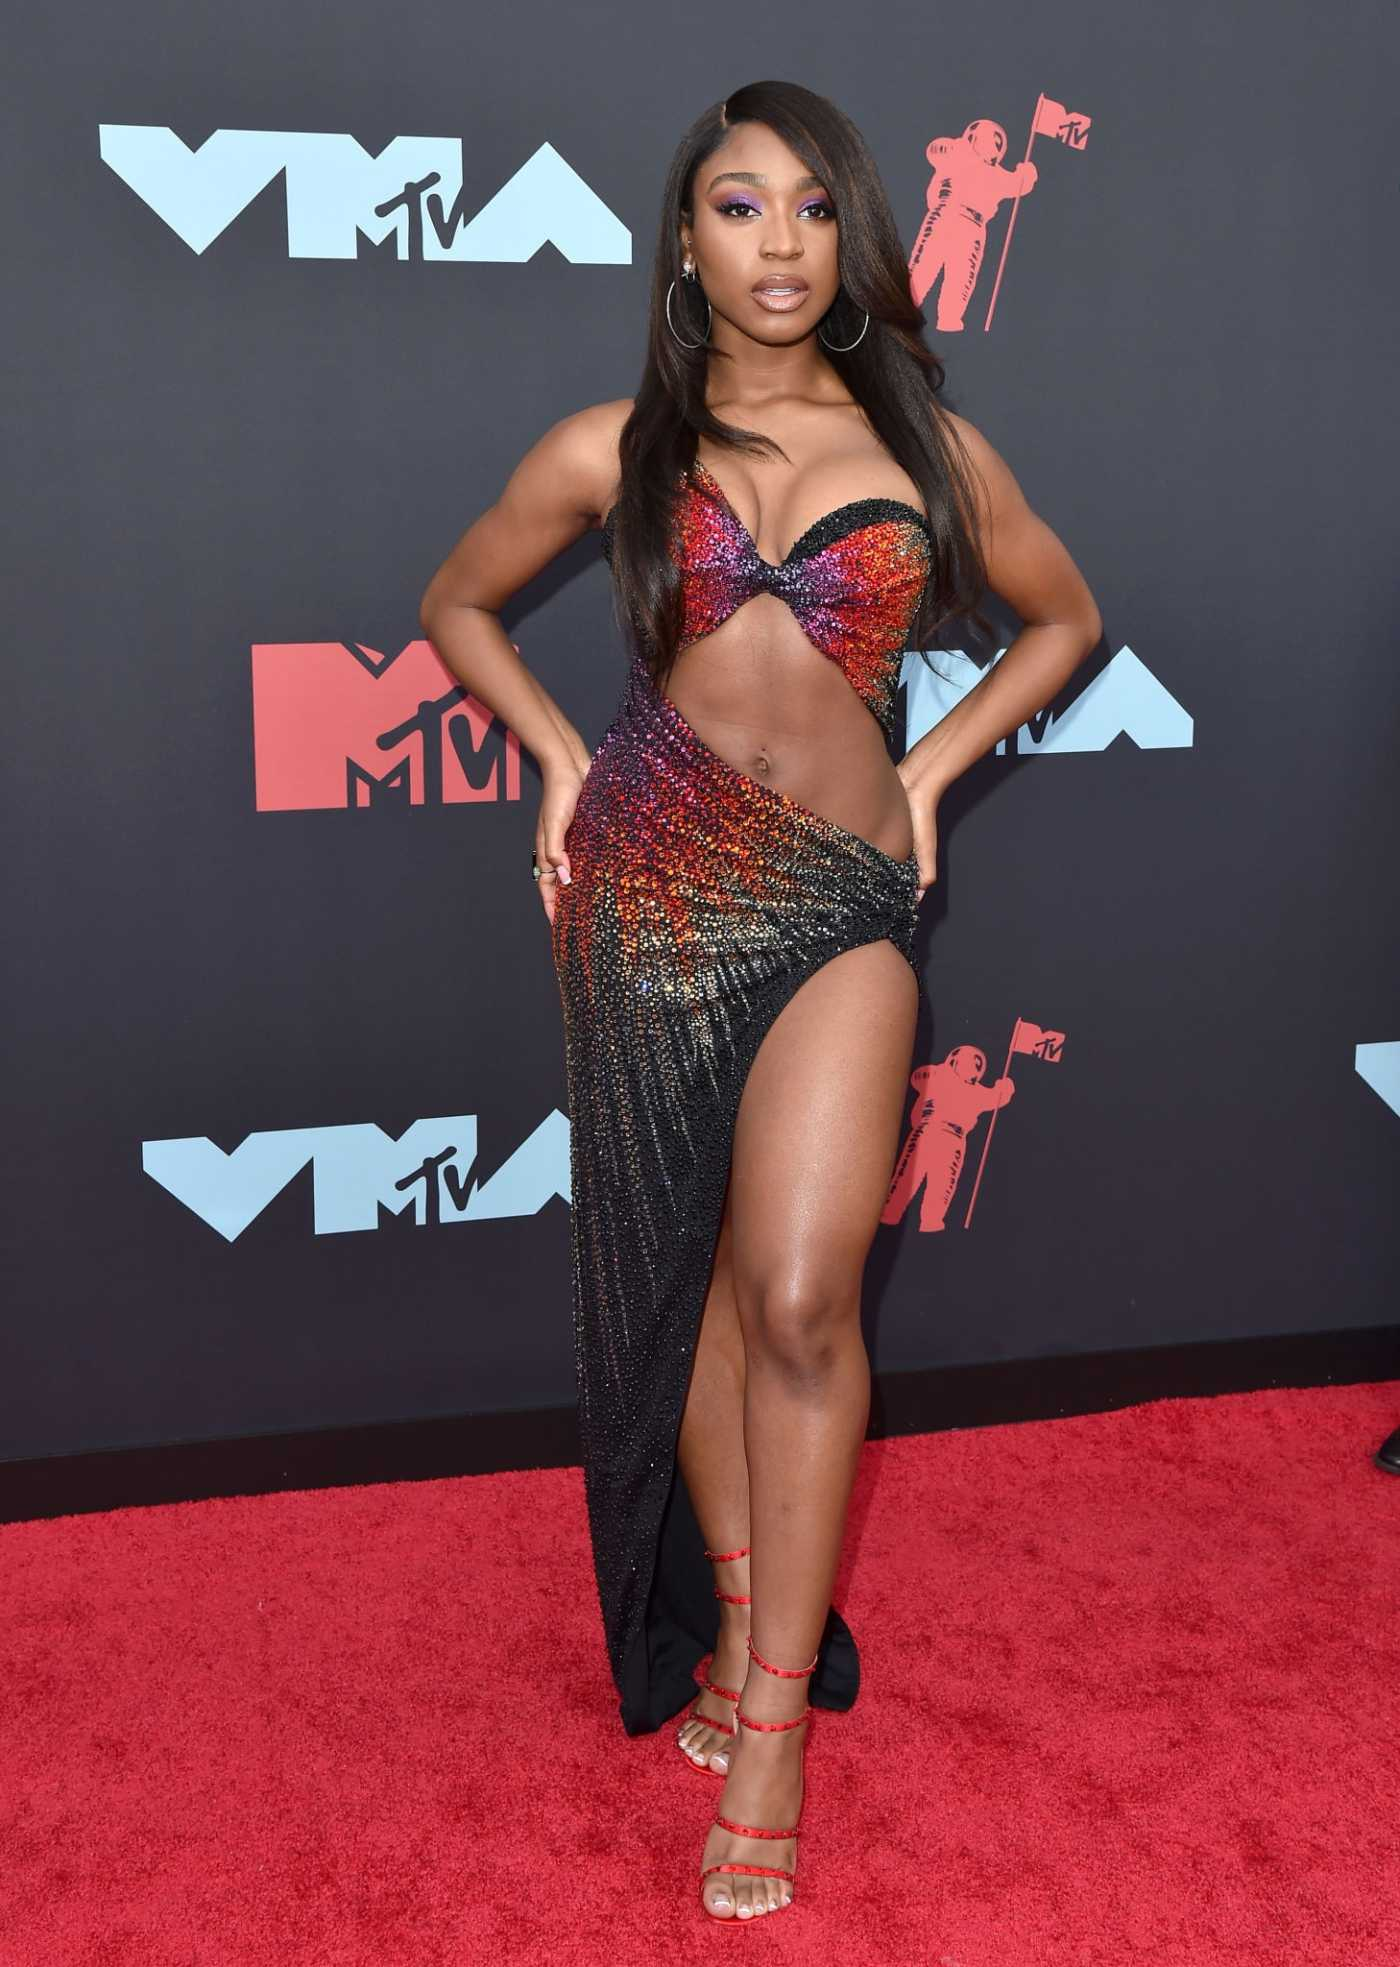 Normani Kordei Attends the 2019 MTV Video Music Awards at Prudential Center in New Jersey 08/26/2019